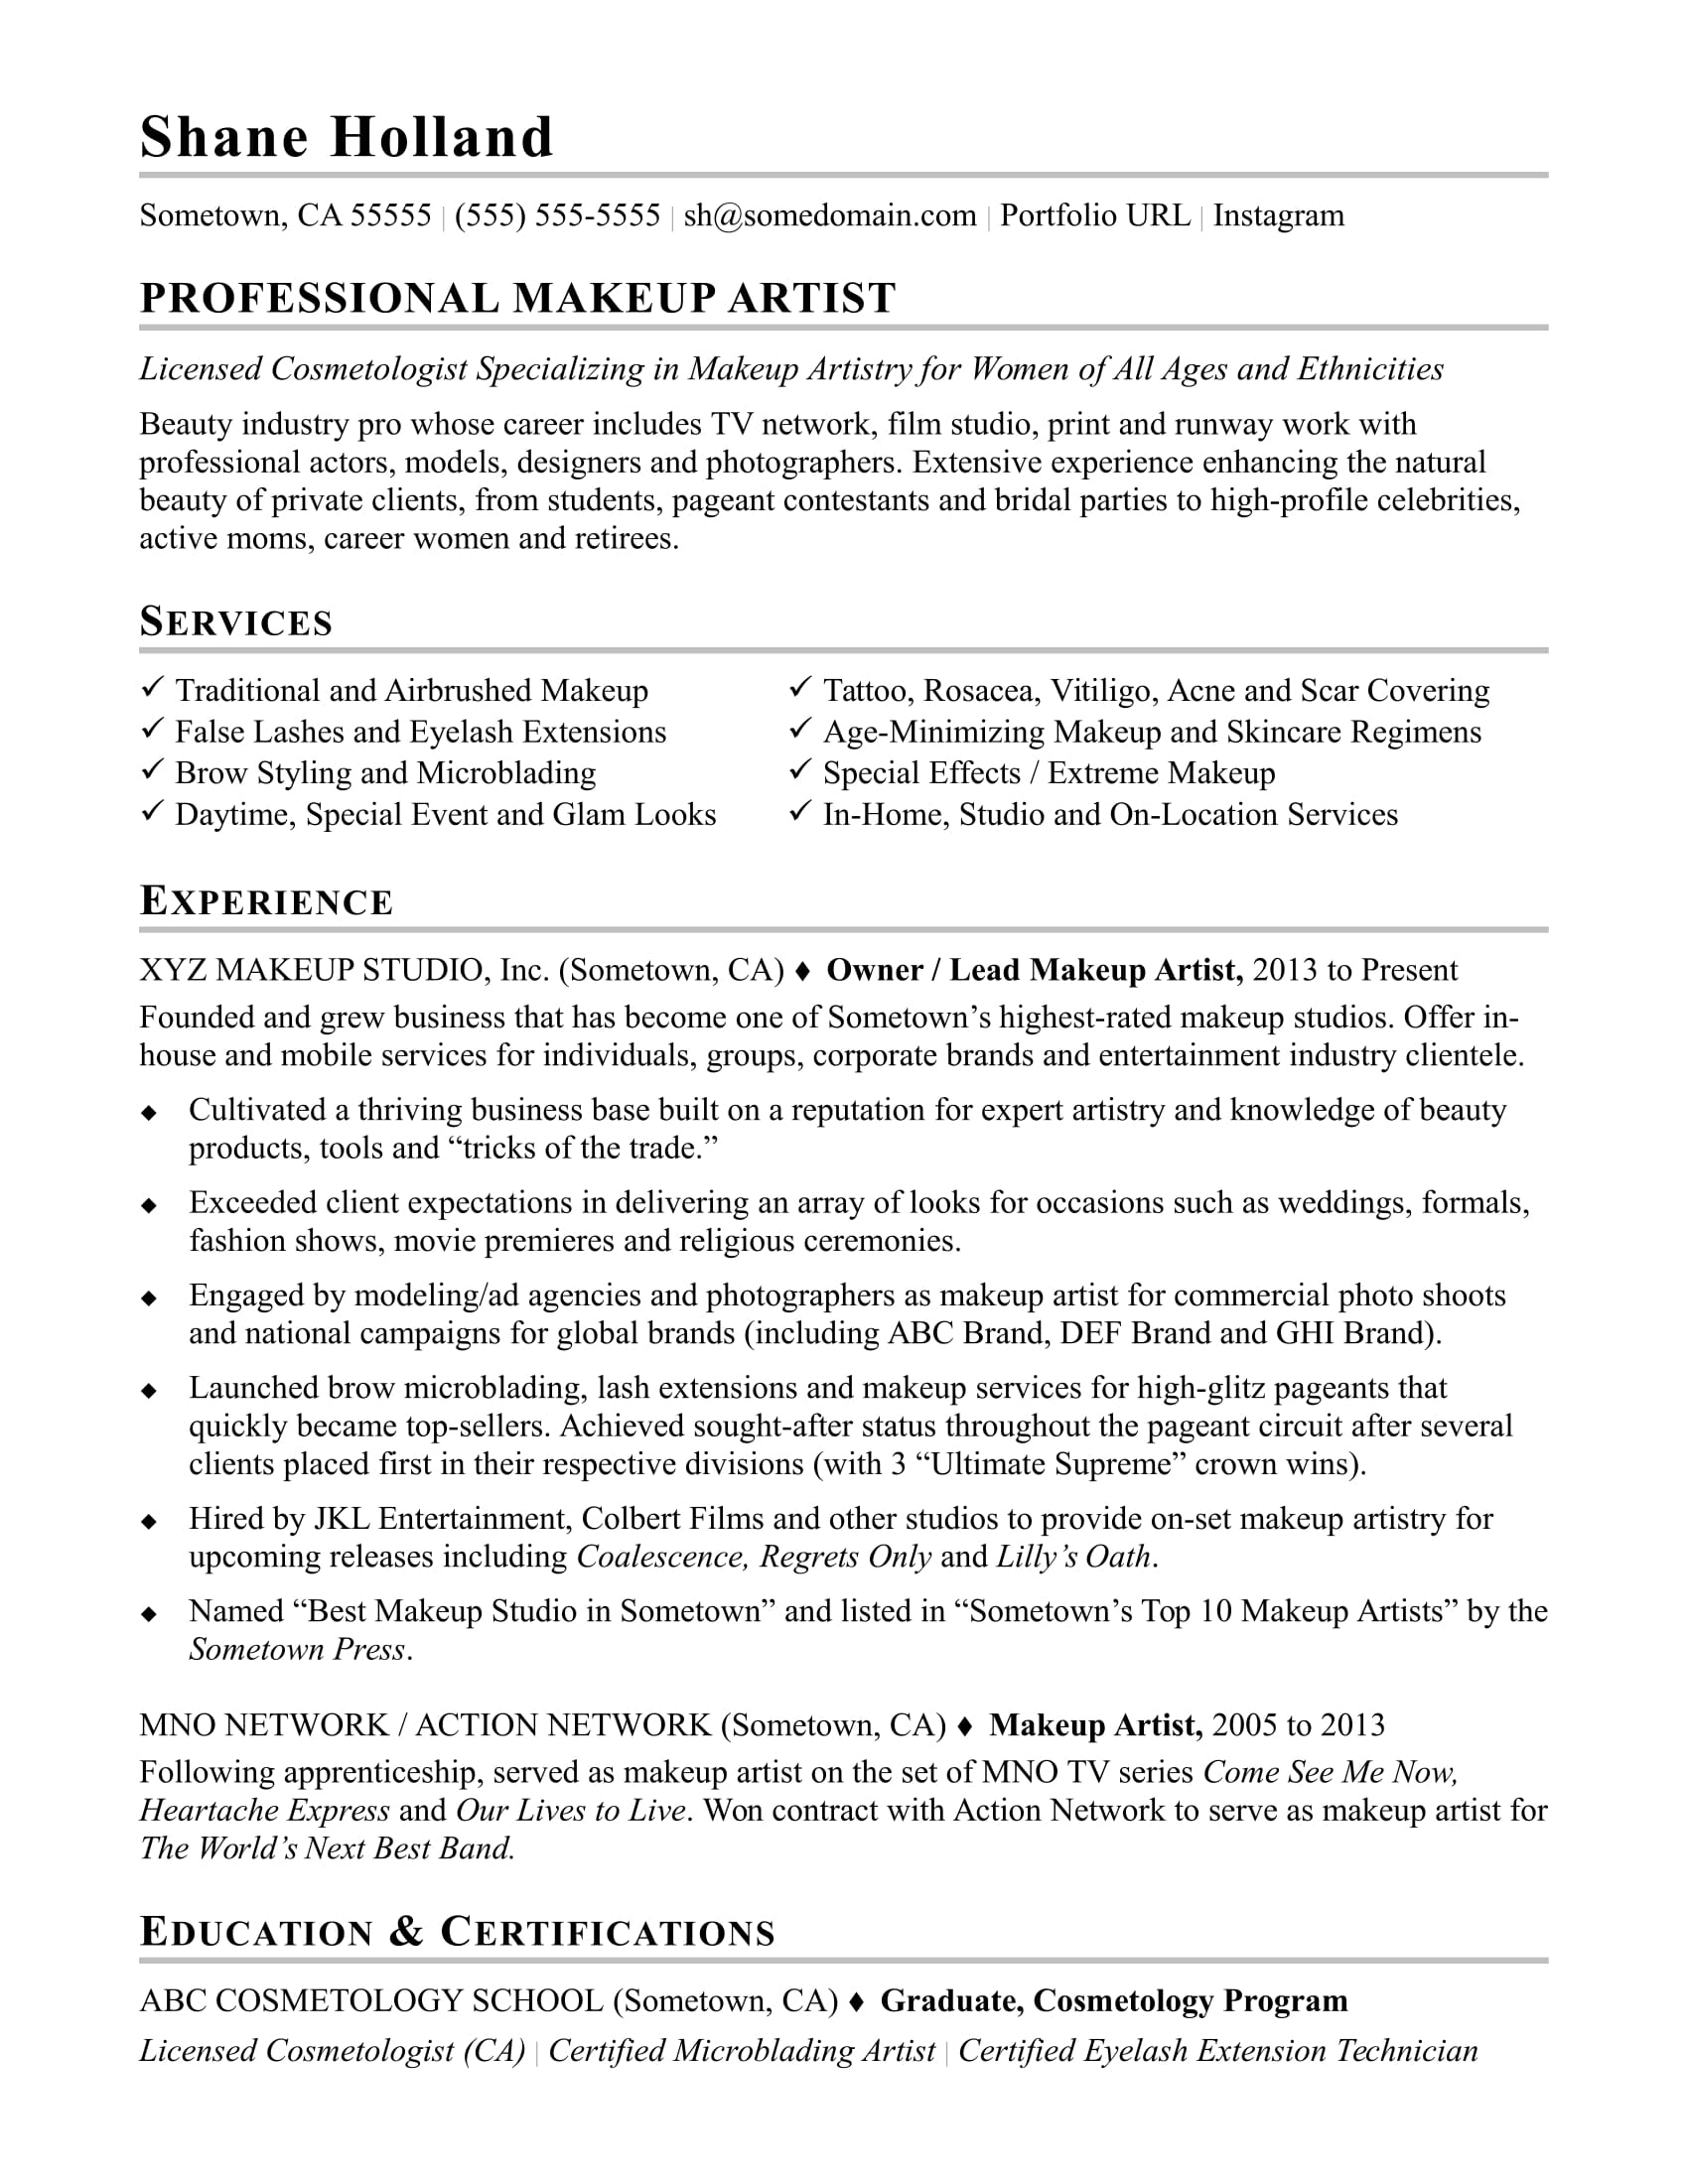 makeup artist resume sample monster freelance making your ats friendly medical school Resume Makeup Artist Resume Freelance